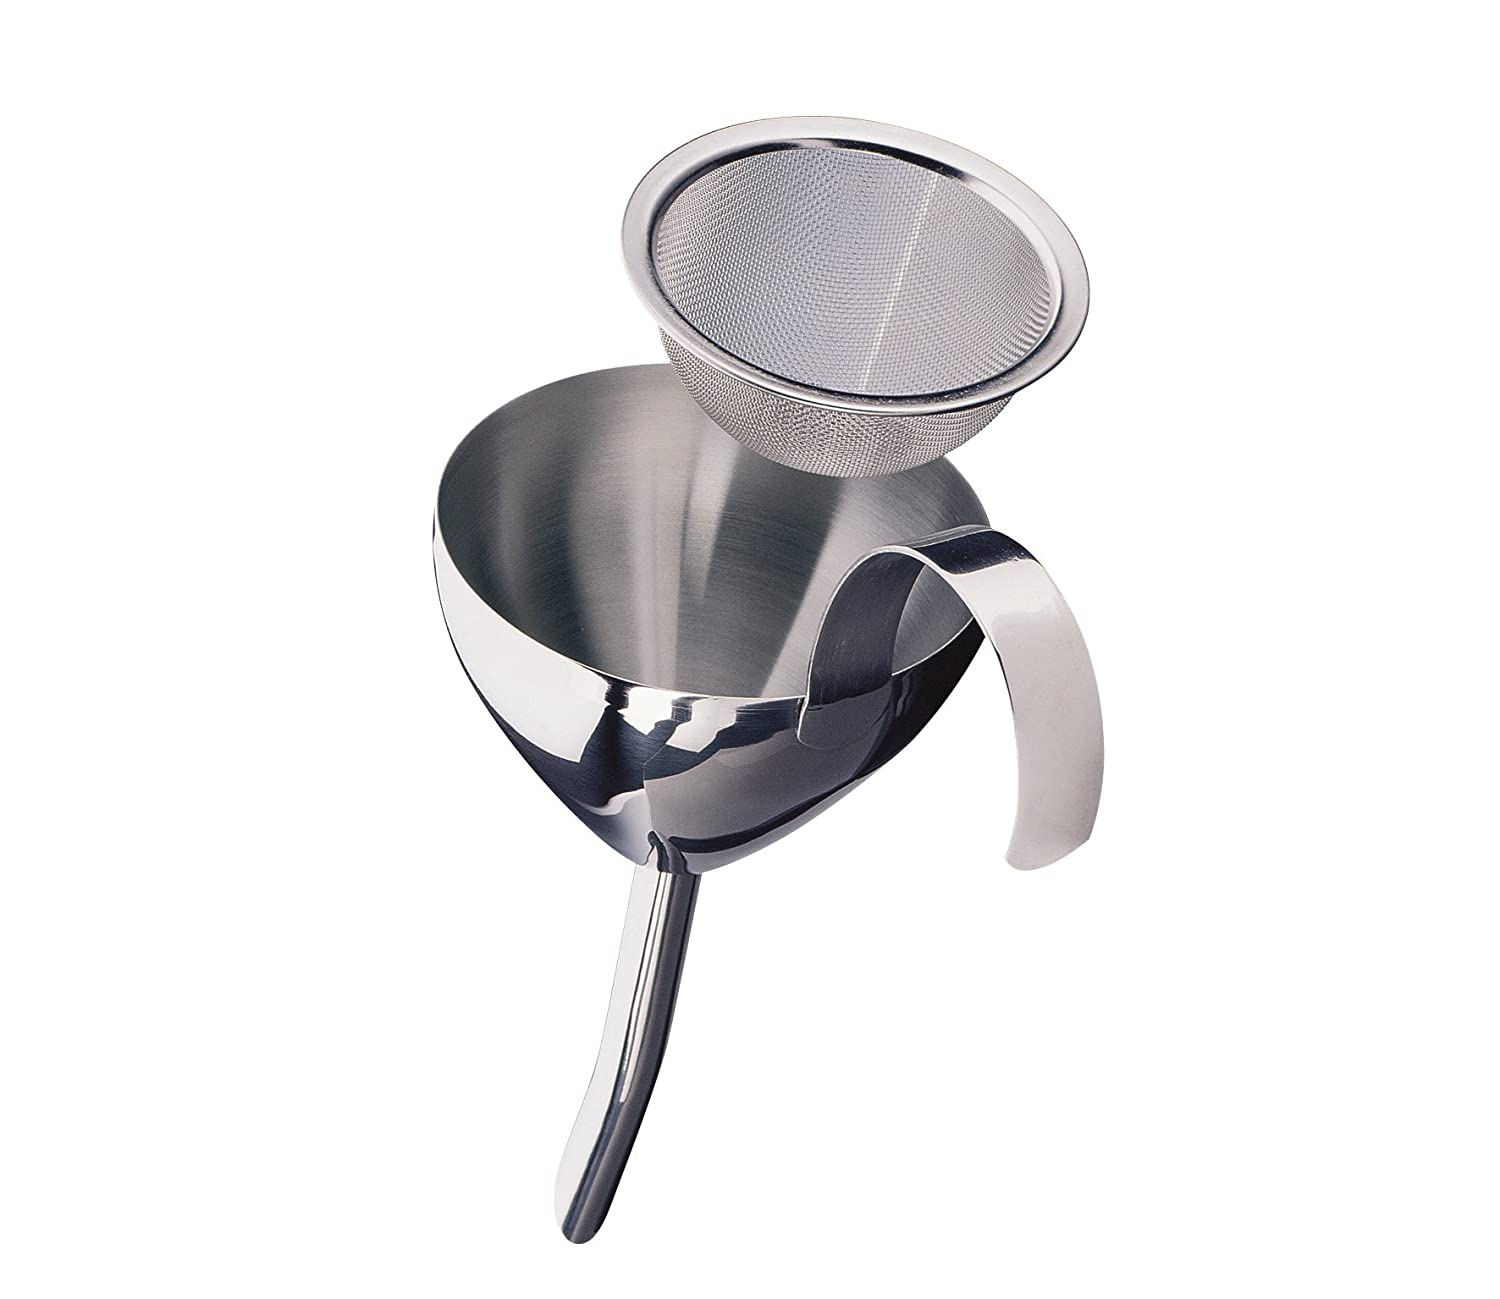 Cilio Stainless Steel Wine Funnel with Strainer, Silver C200607